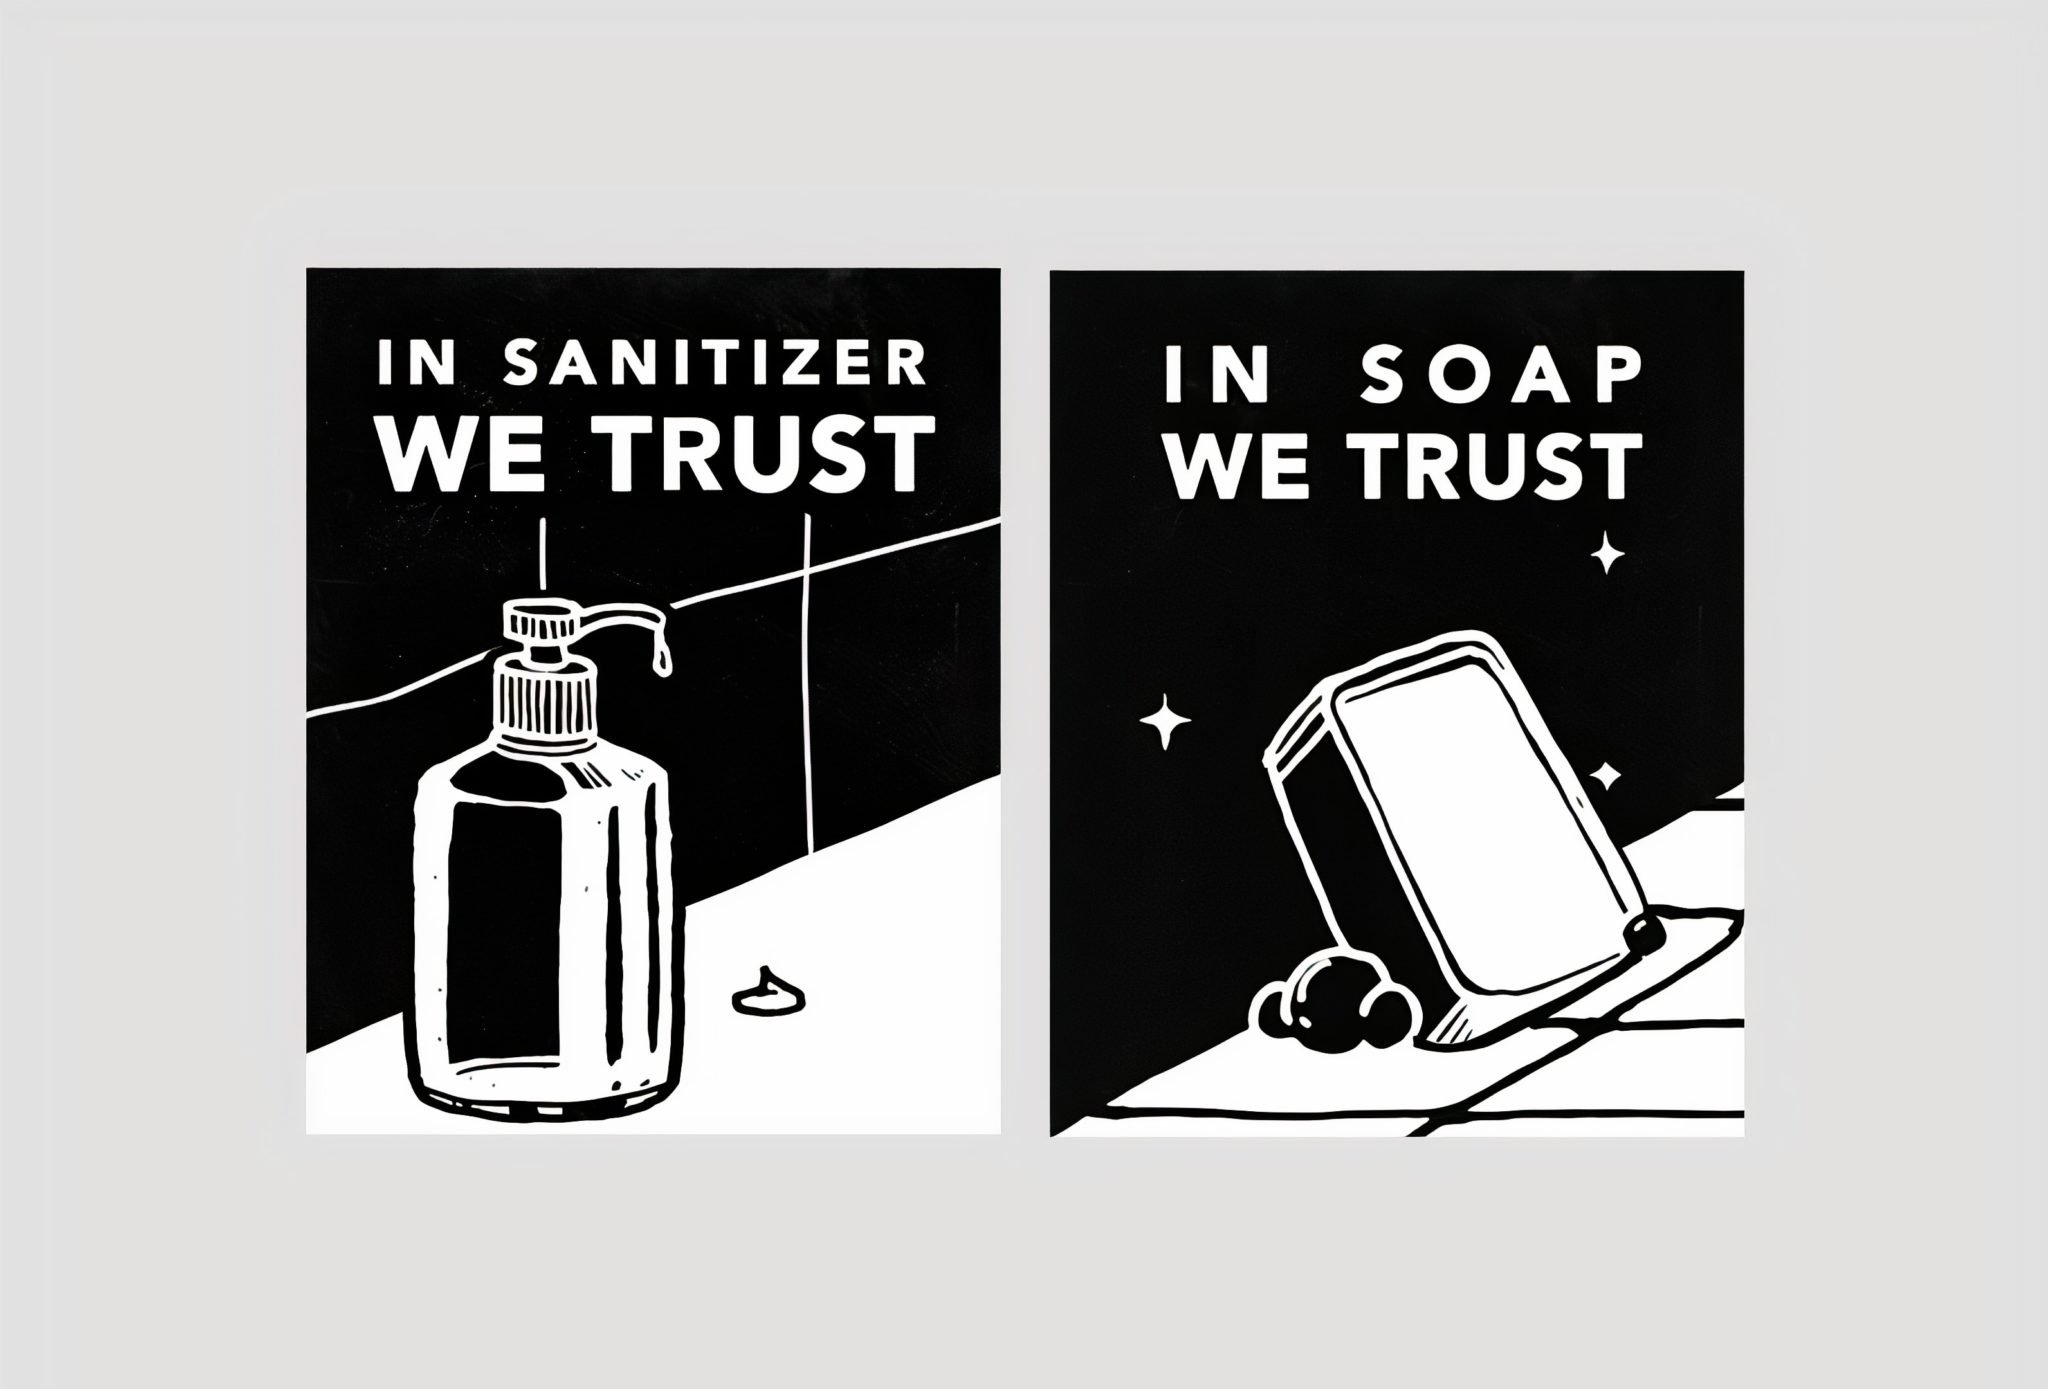 black and white illustration of sanitizer and soap